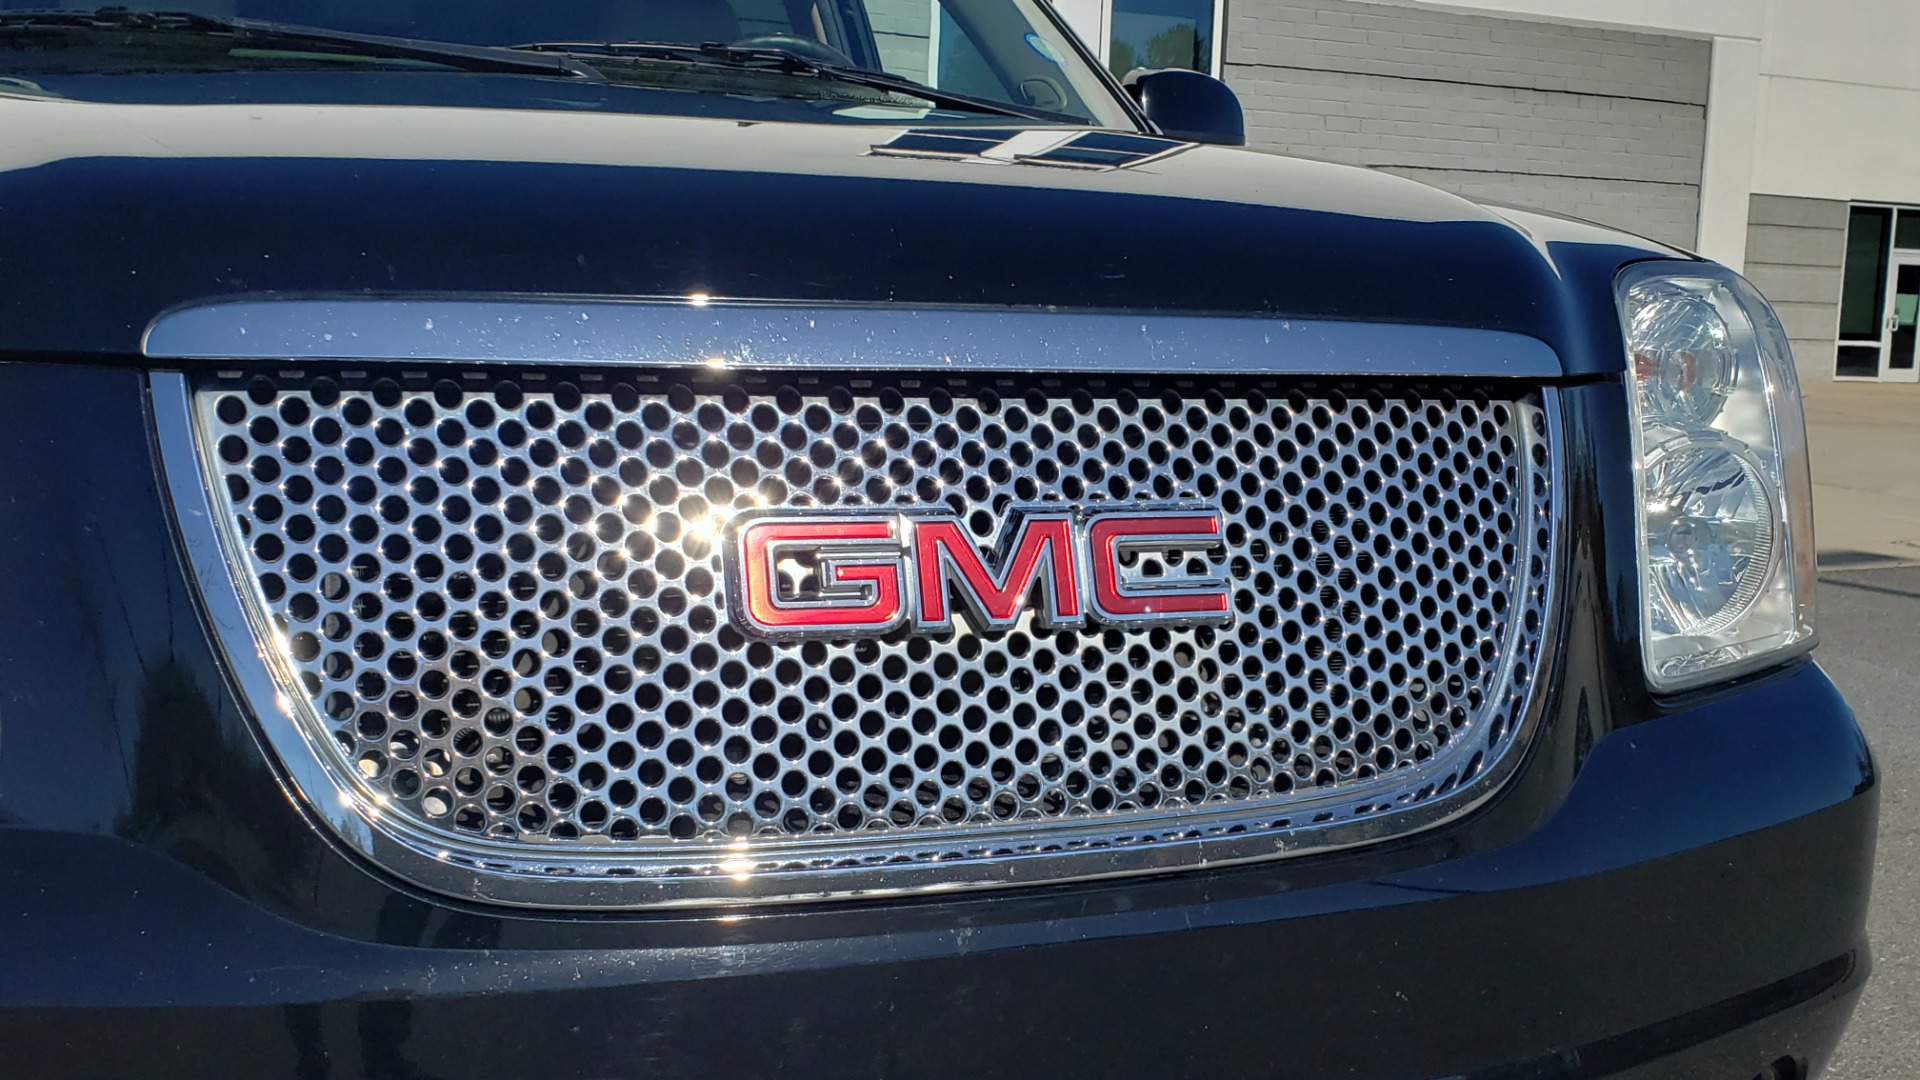 Used 2013 GMC YUKON XL DENALI / AWD / NAV / SUNROOF / 3-ROW / ENTERTAINMENT for sale Sold at Formula Imports in Charlotte NC 28227 22